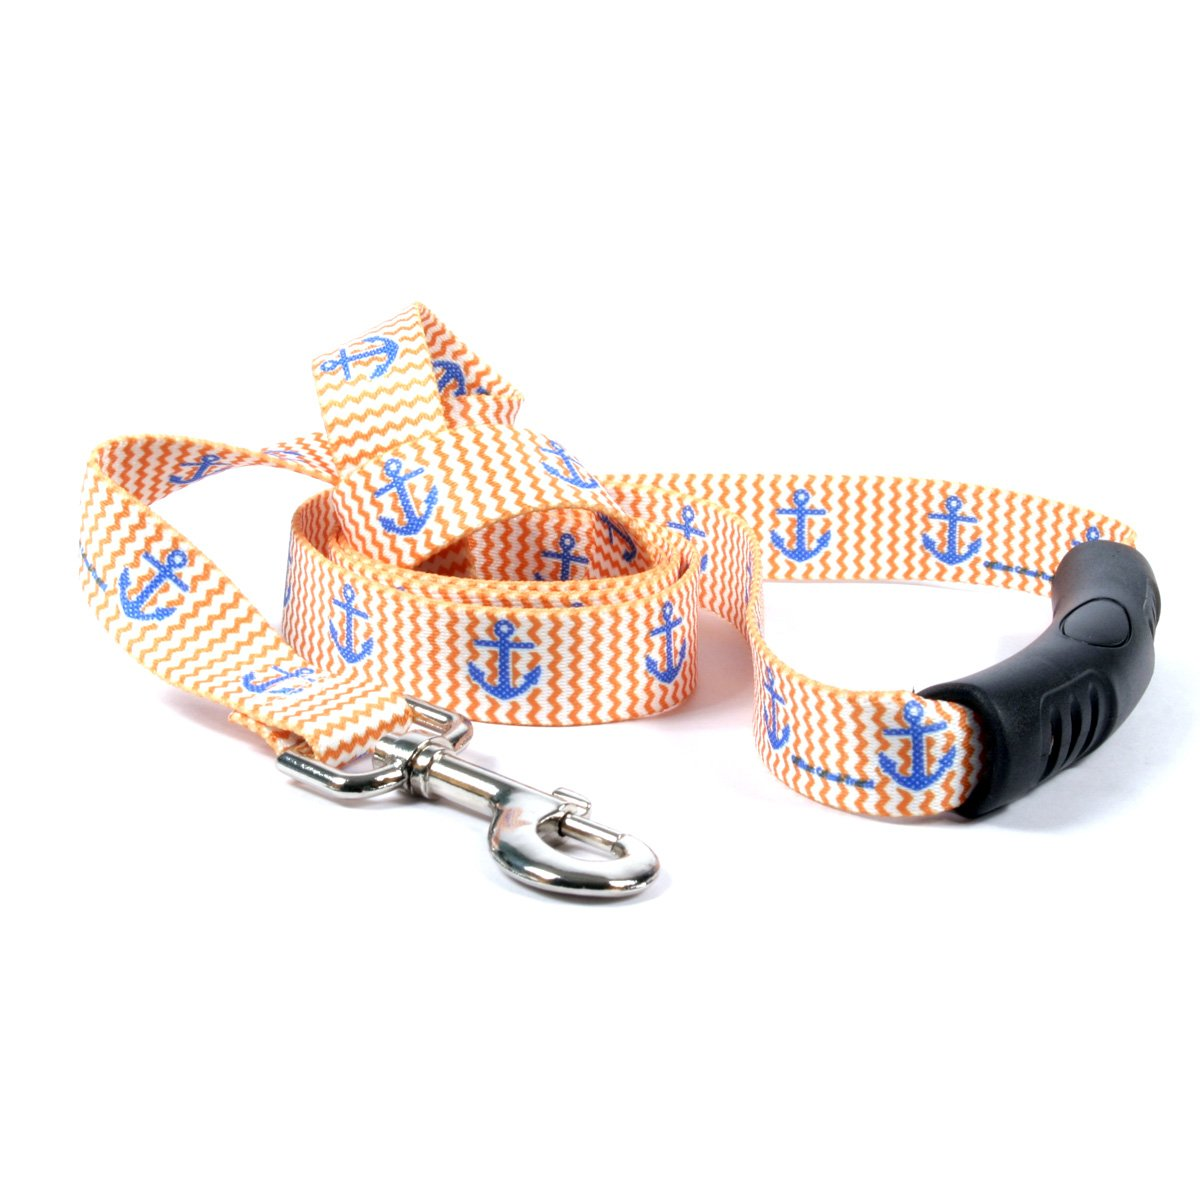 Yellow Dog Design Anchors Away Ez-Grip Dog Leash with Comfort Handle 1'' Wide and 5' (60'') Long, Large